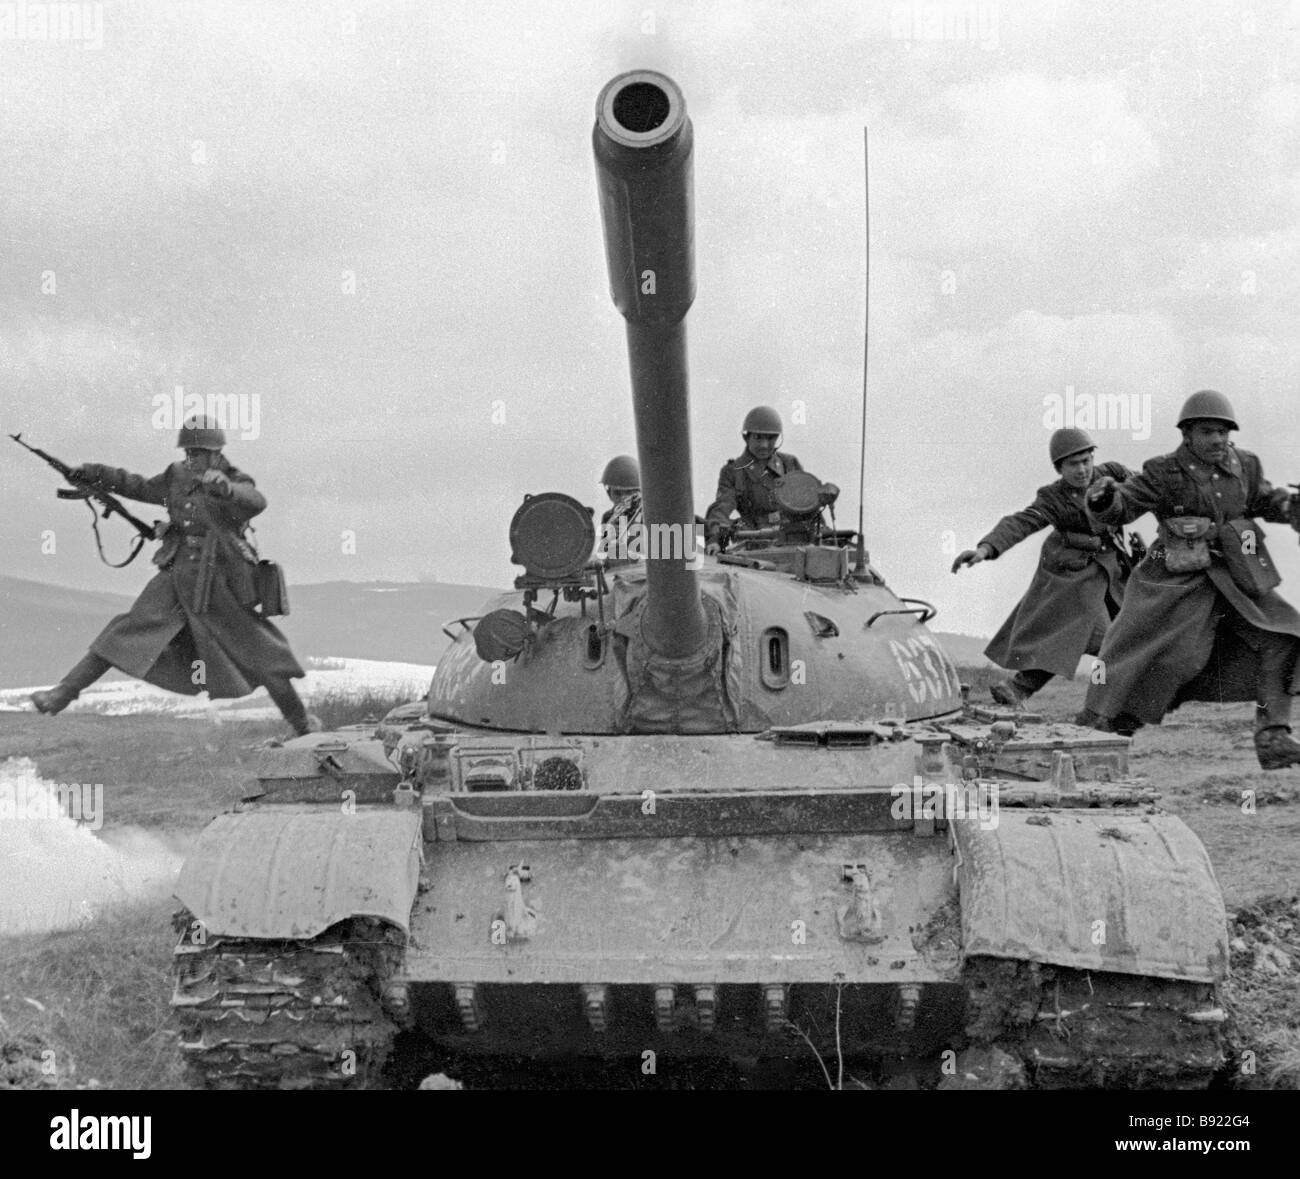 Landed tanks are assaulting at the manoeuvre - Stock Image